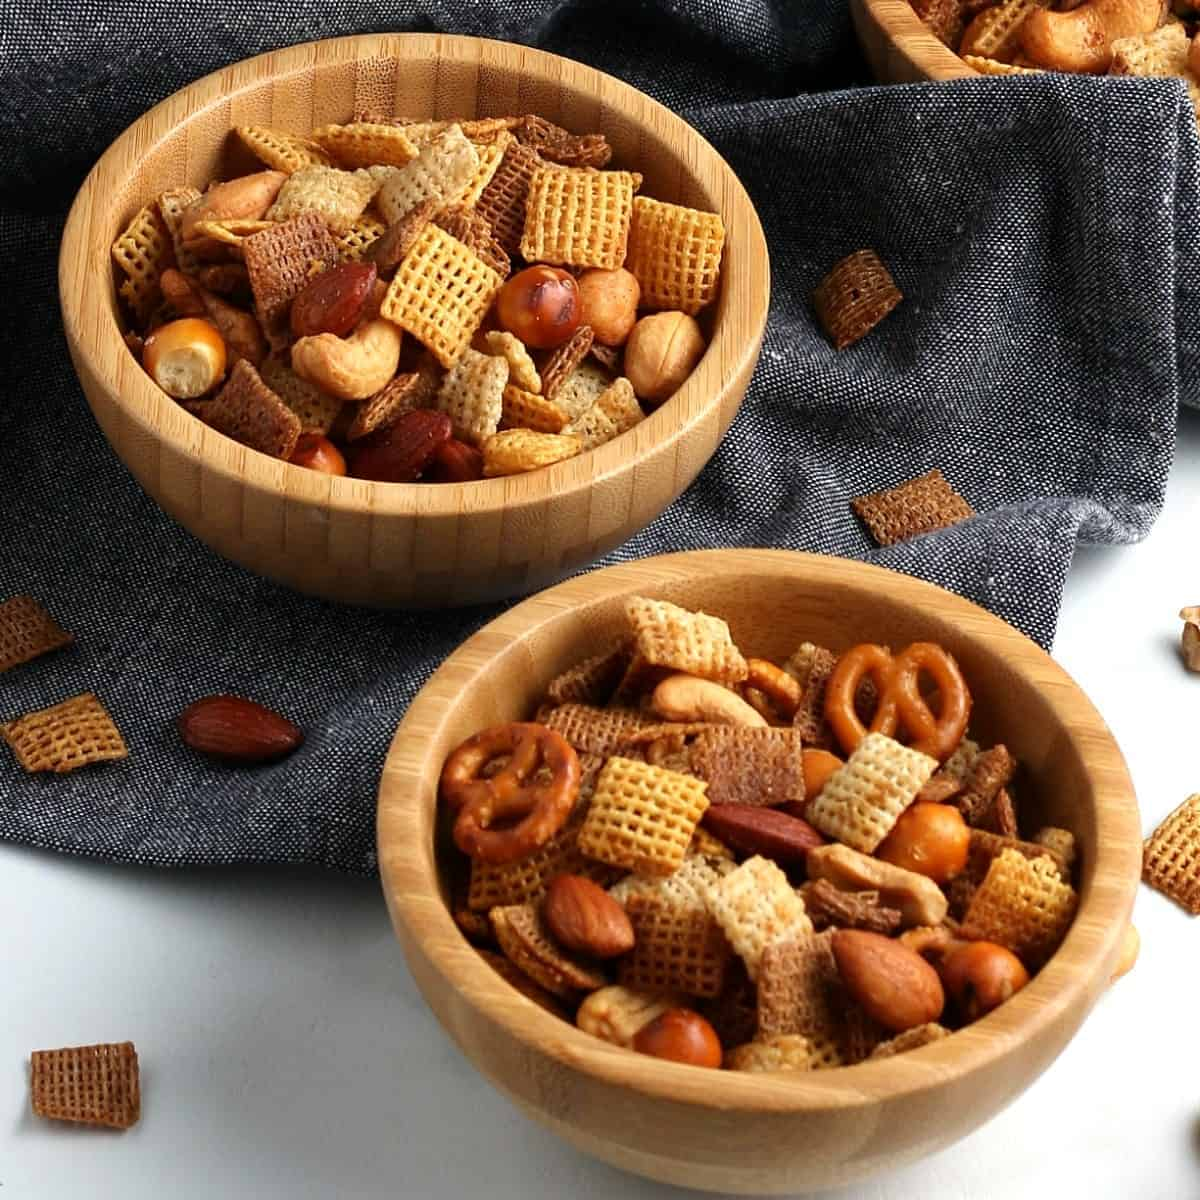 Two bowls full of a chex mix type of cereal and nuts.